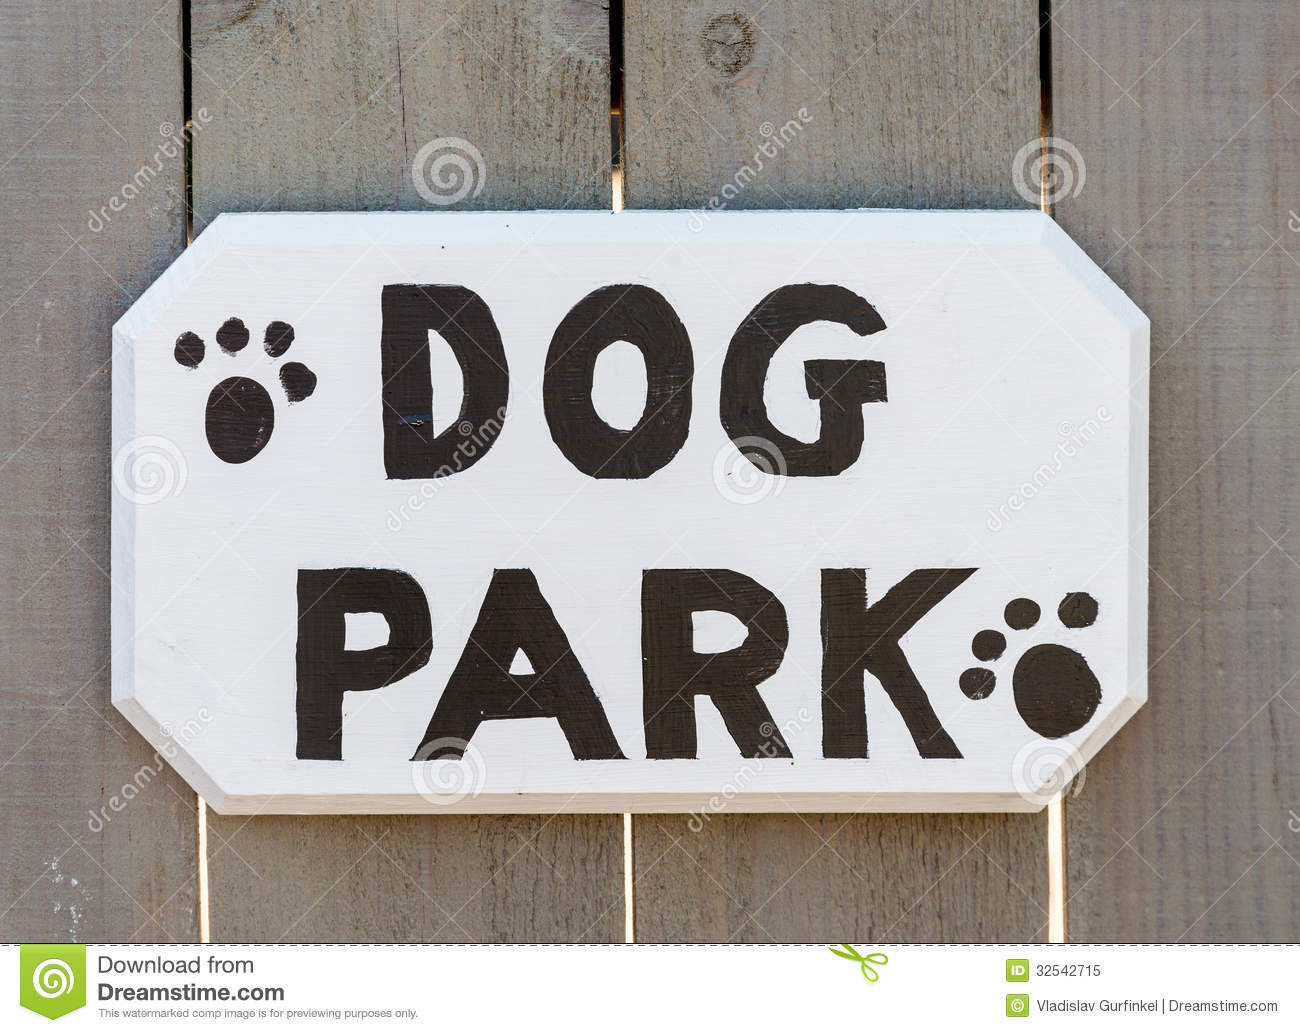 How to Start an Indoor Dog Park